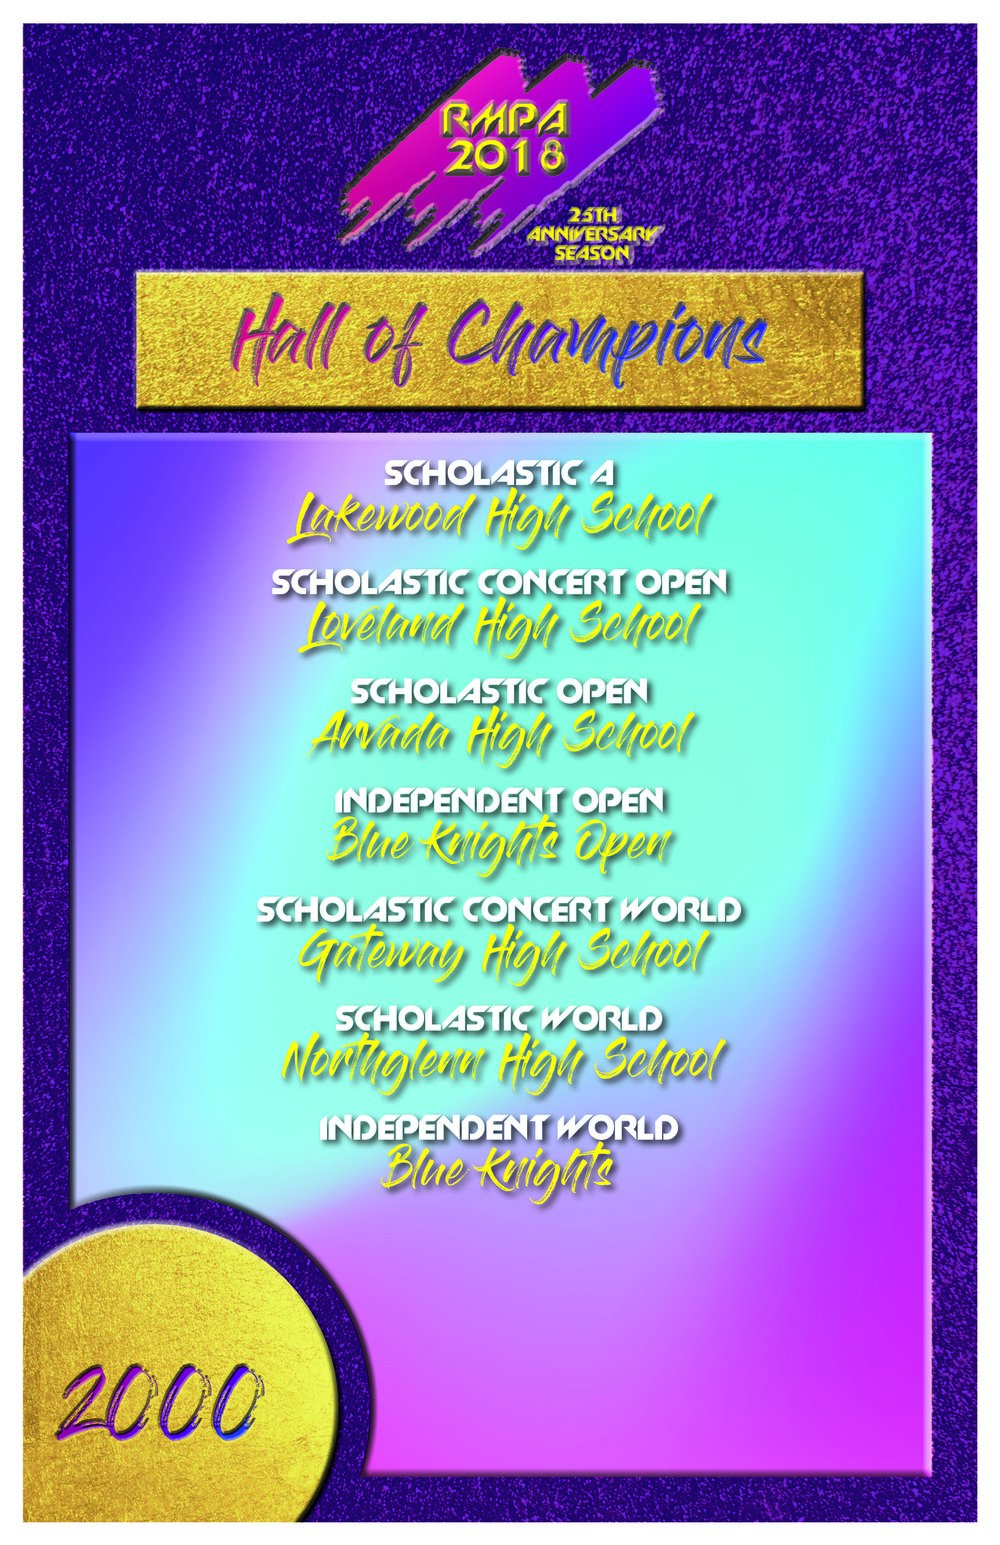 Hall of Champions Posters_Page_08.jpg